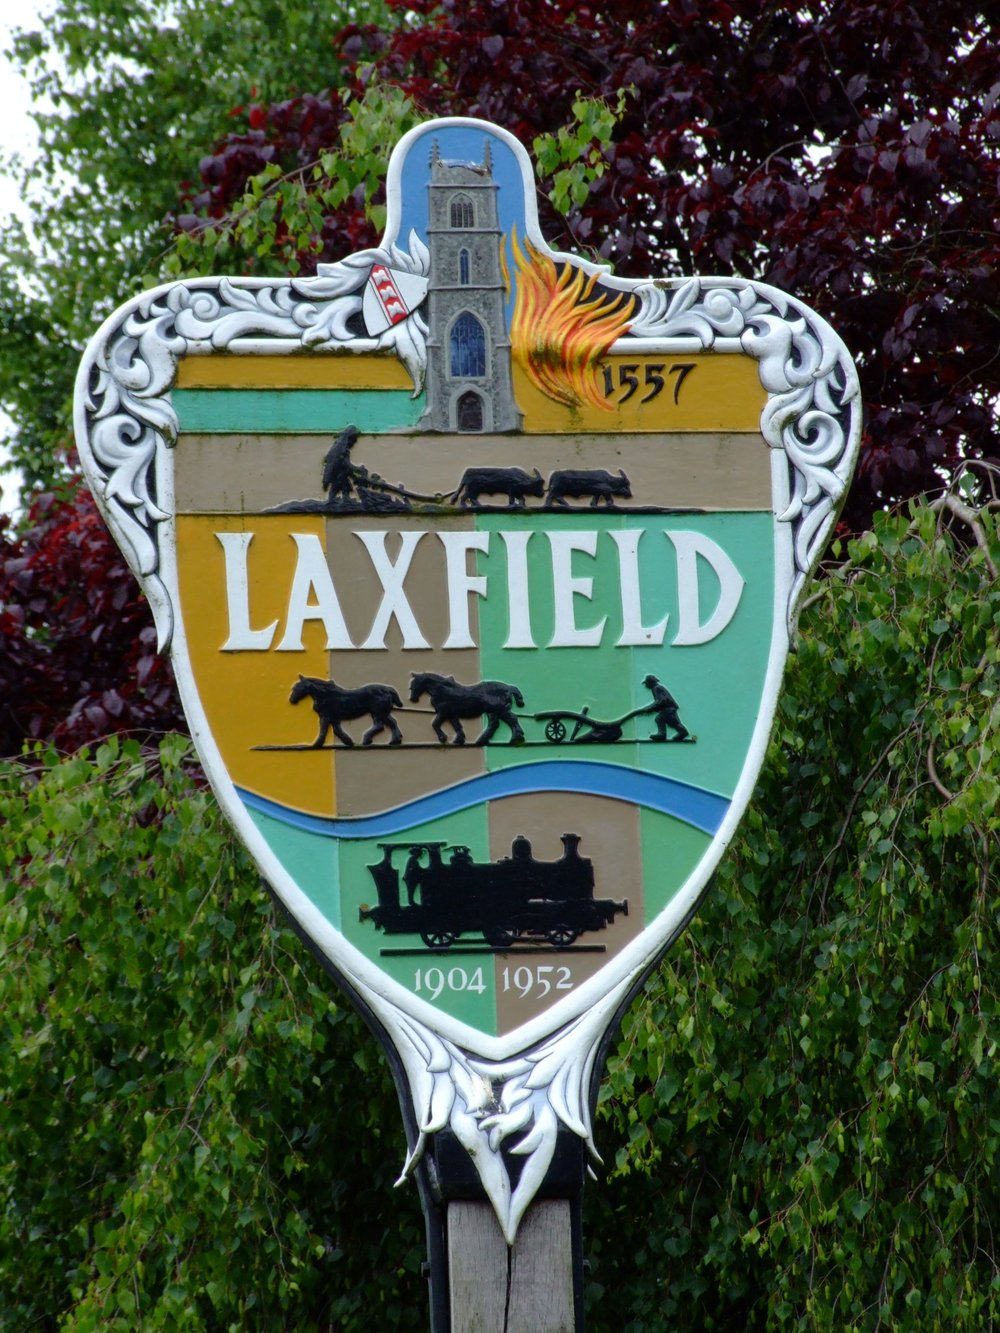 laxfield sign.jpg